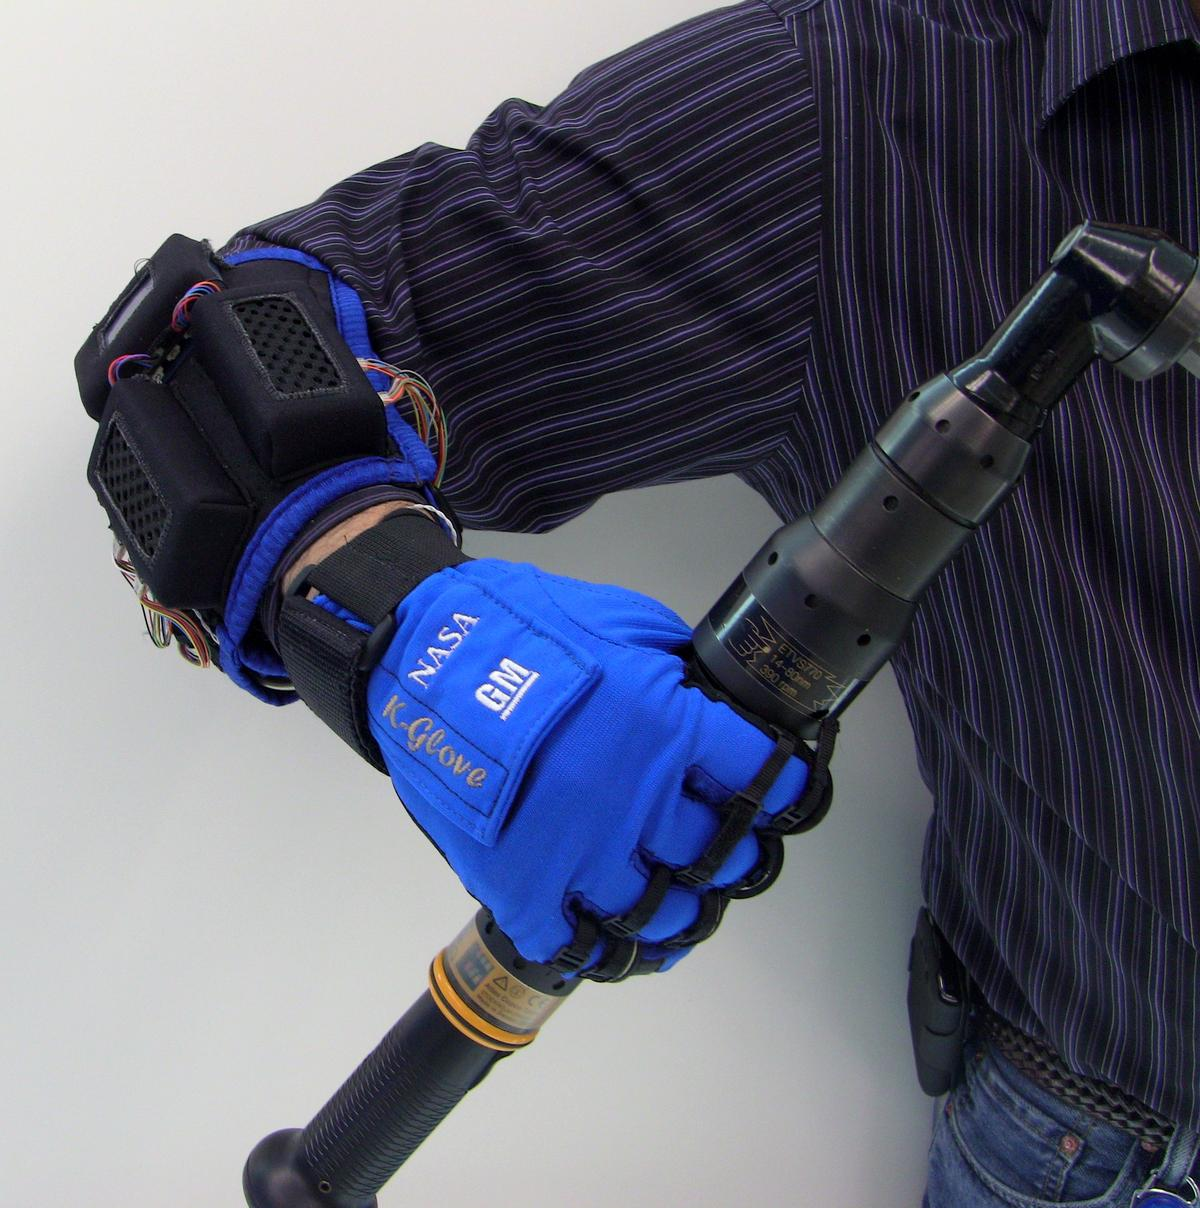 NASA and GM engineers have created Robo-Glove, a power-assisted glove designed to keep astronauts and autoworkers from getting repetitive stress injuries